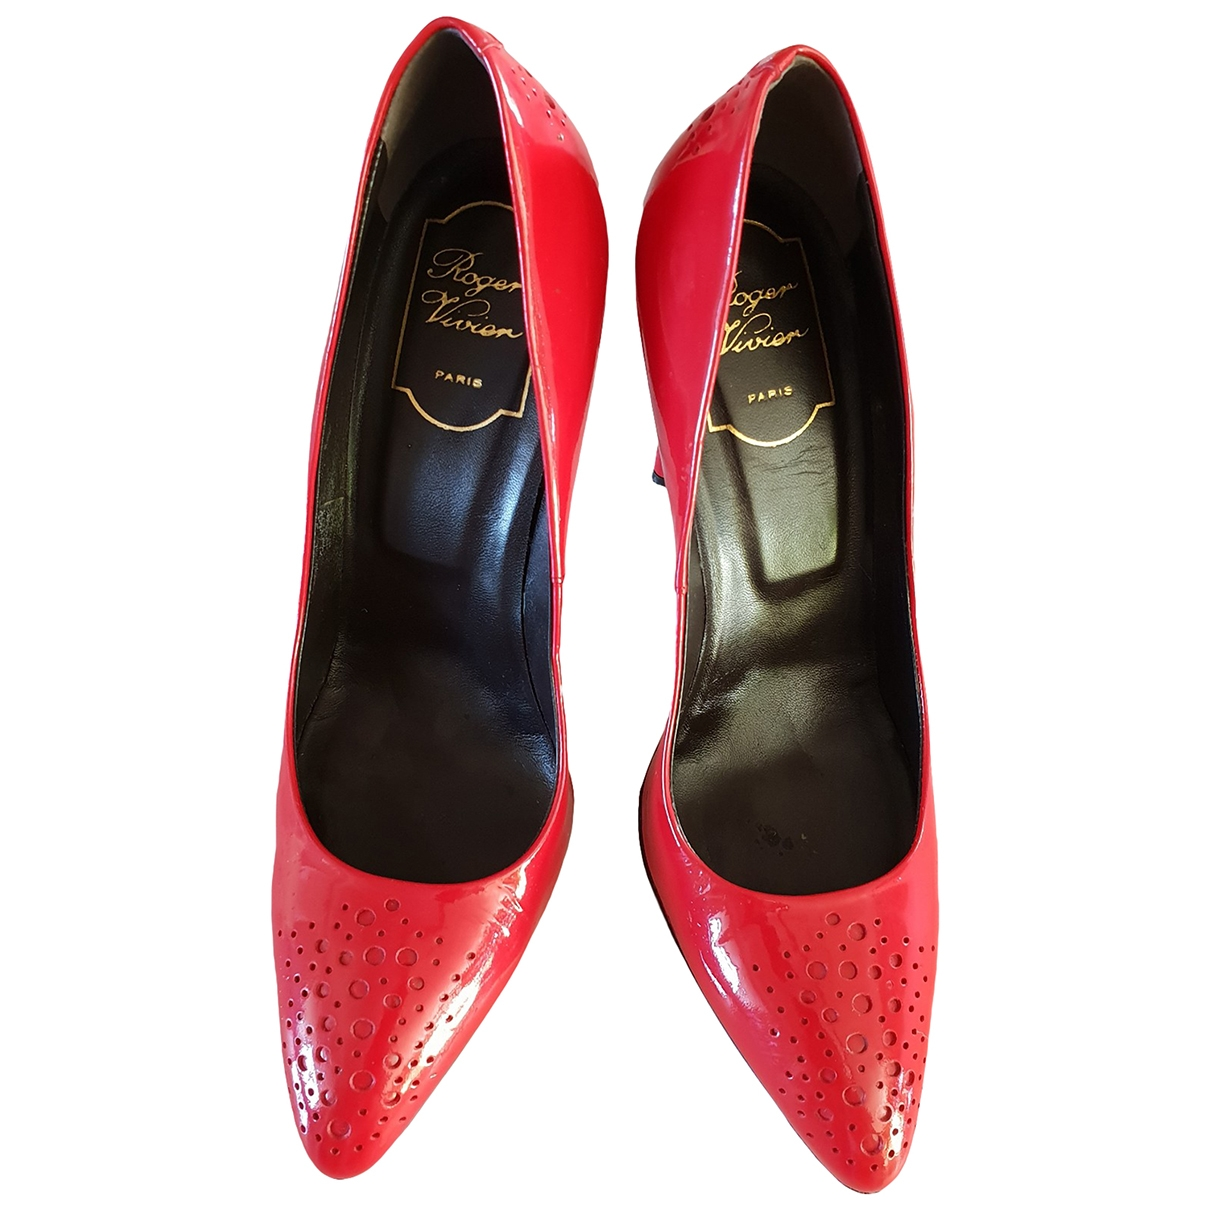 Roger Vivier \N Red Patent leather Heels for Women 38 EU